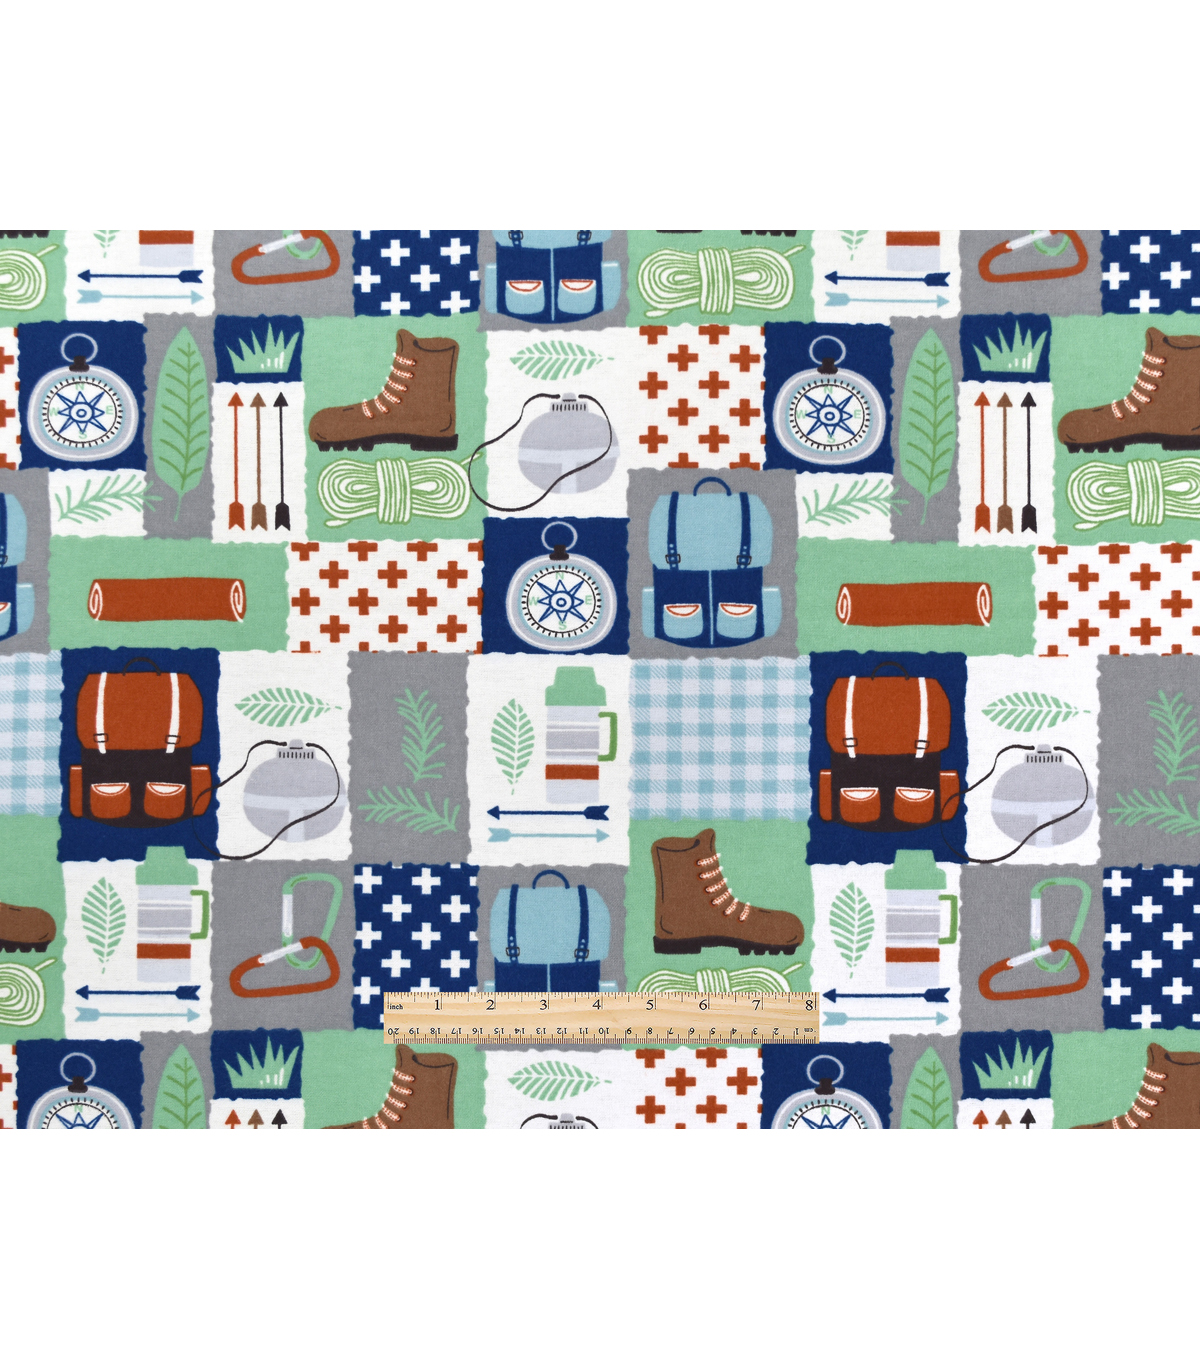 Snuggle Flannel Fabric -Camping Patch